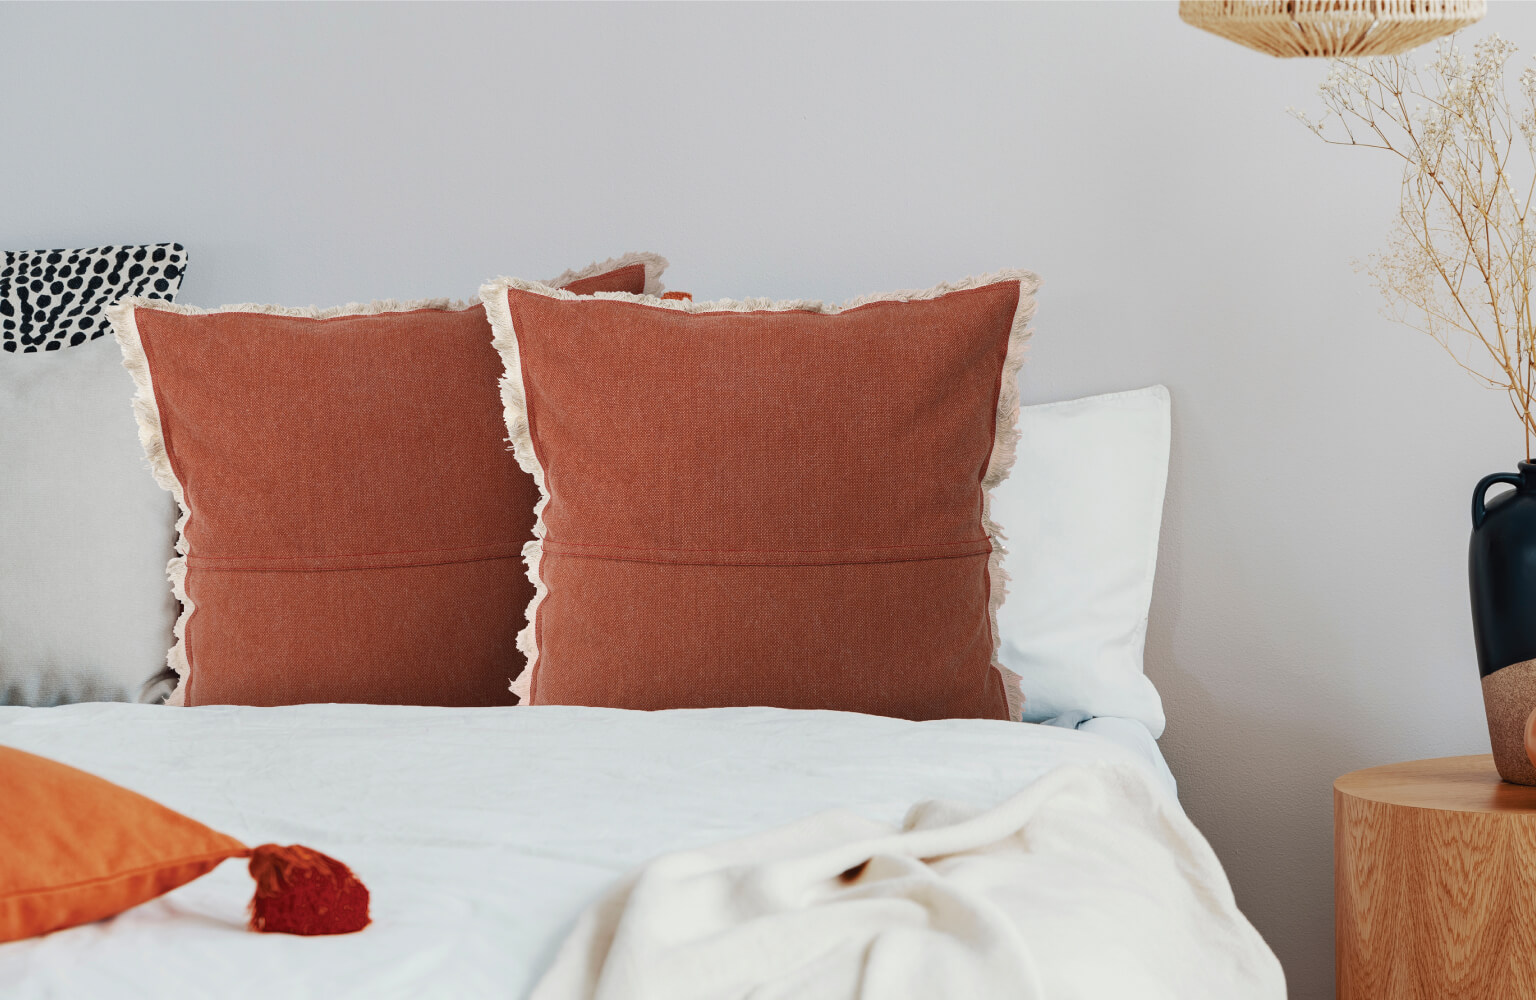 Gorgeous rustic cushions for your home